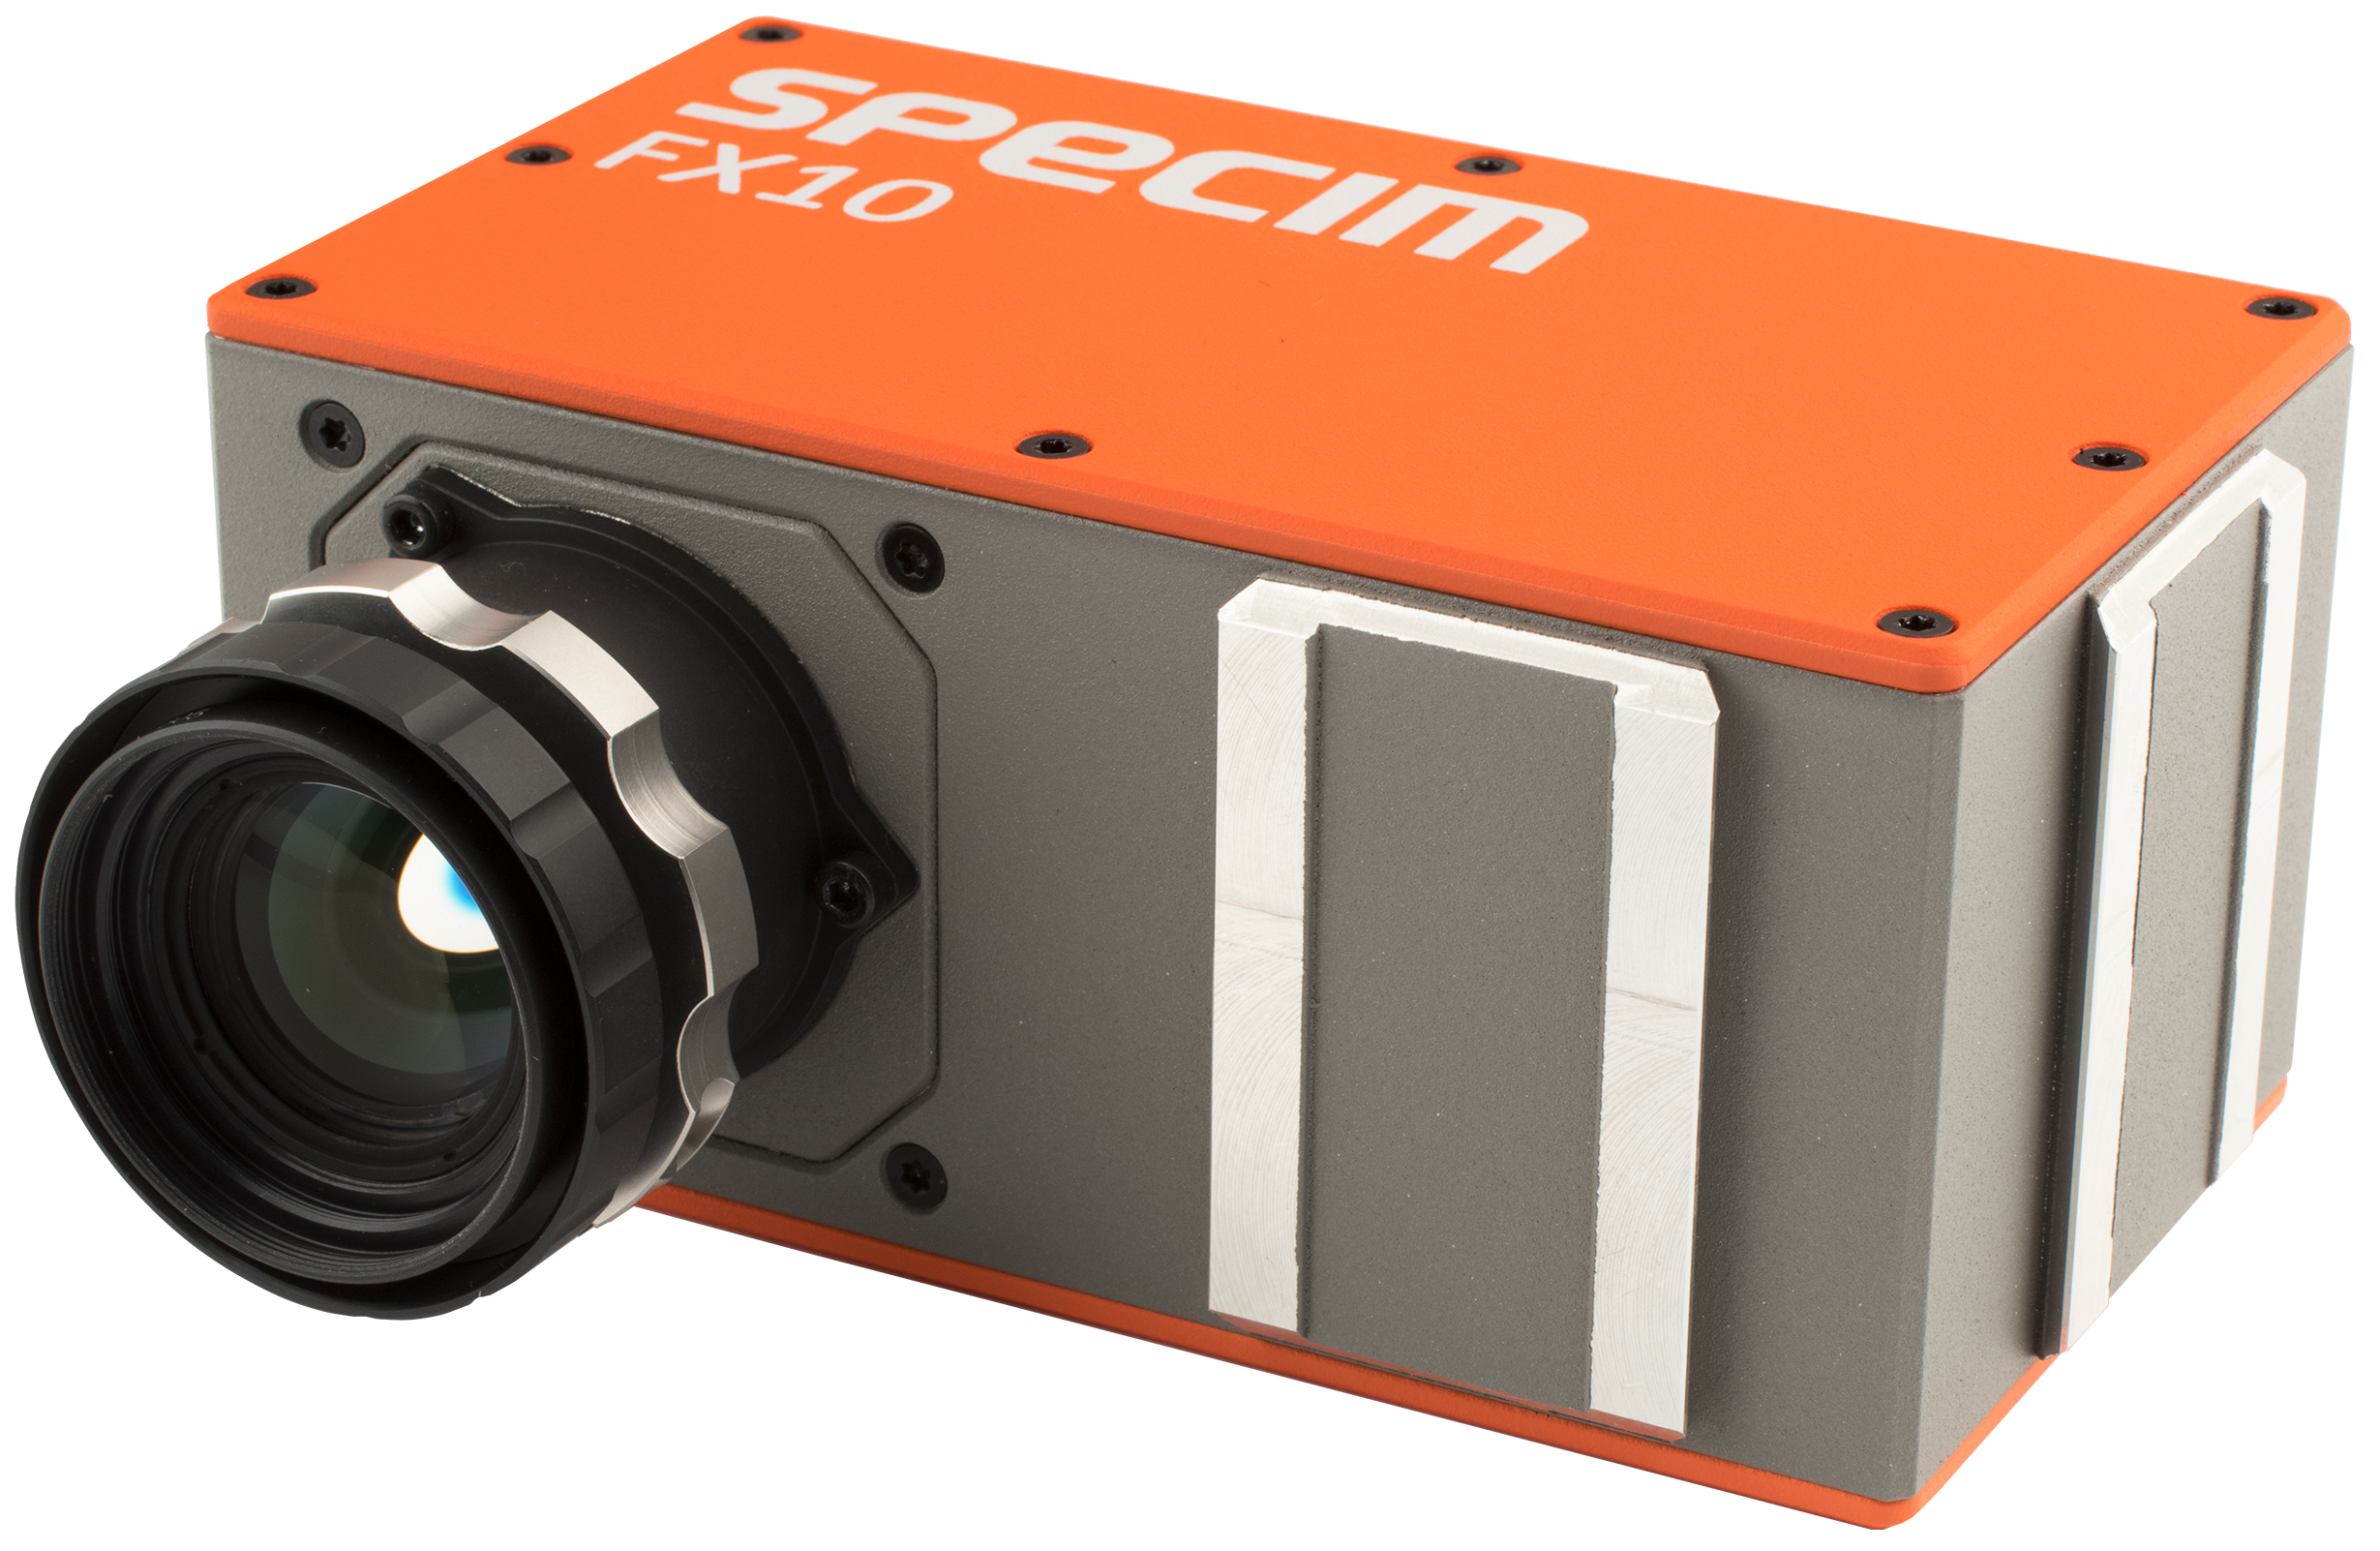 Machine vision cameras from The Imaging Source feature